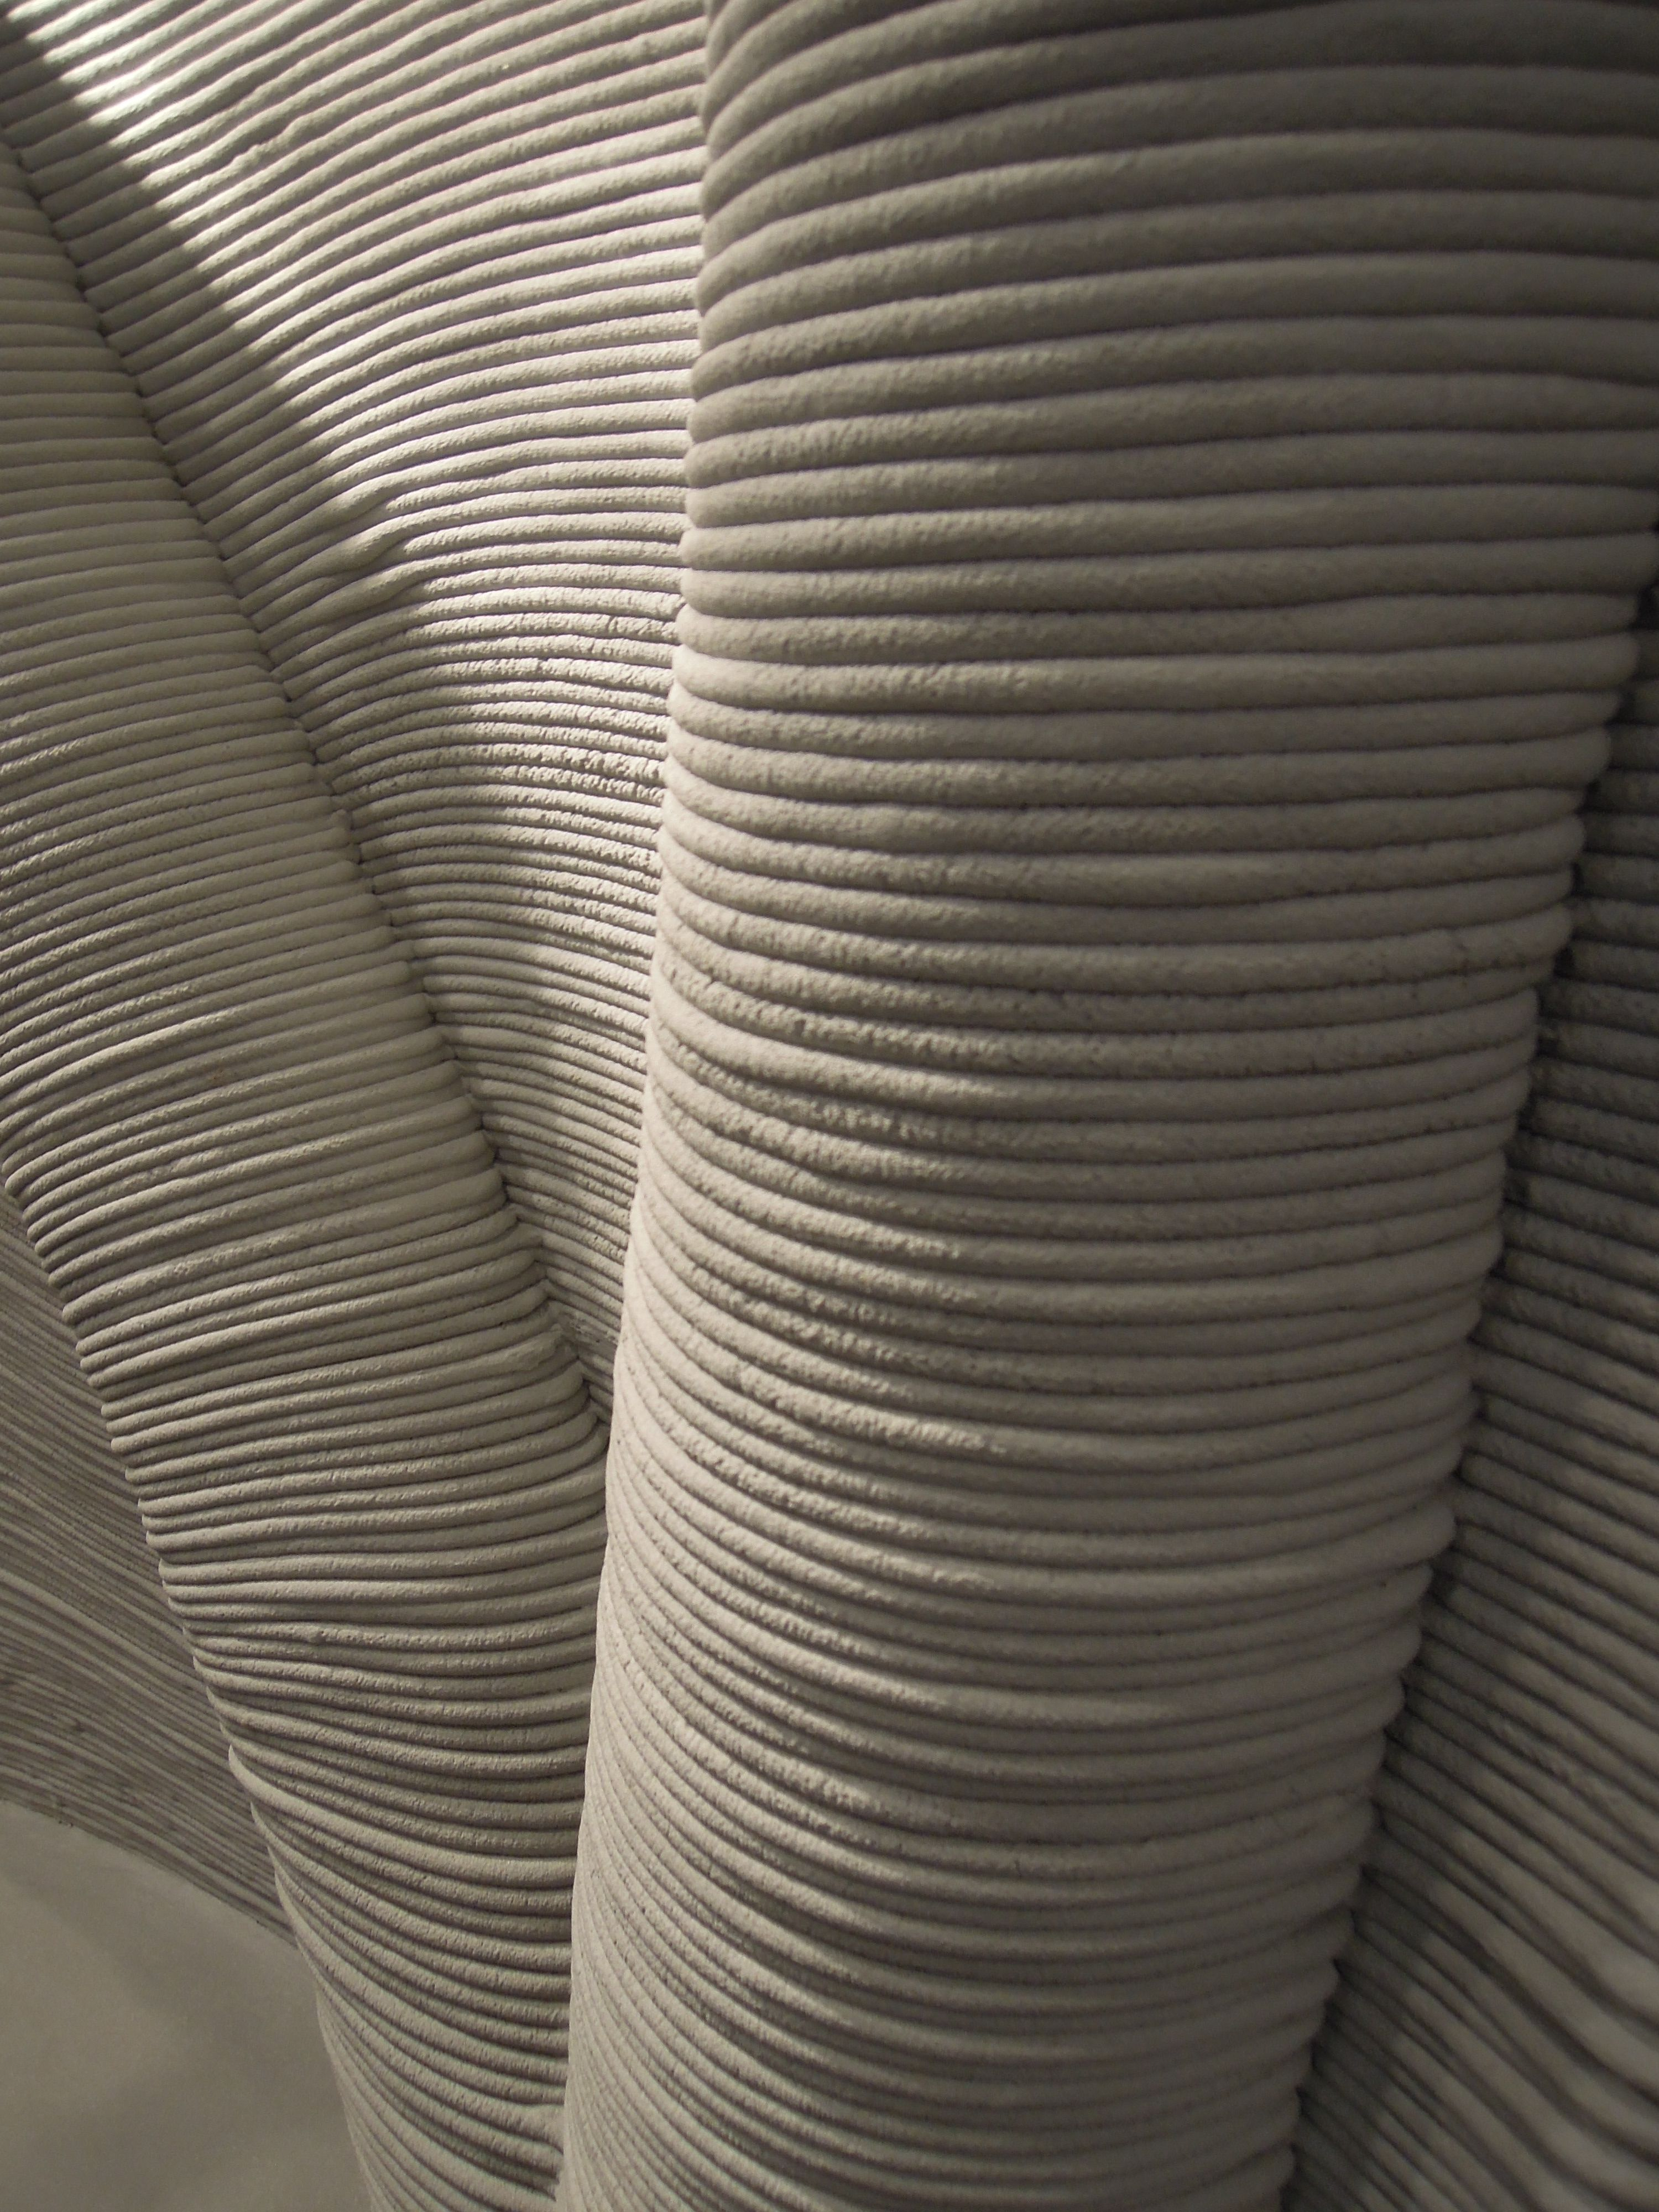 3d Printed Cement Wall By Xtreeeeu At Print 2015 In Lyon Circuit Bent Modified Toy Festival Ponoko